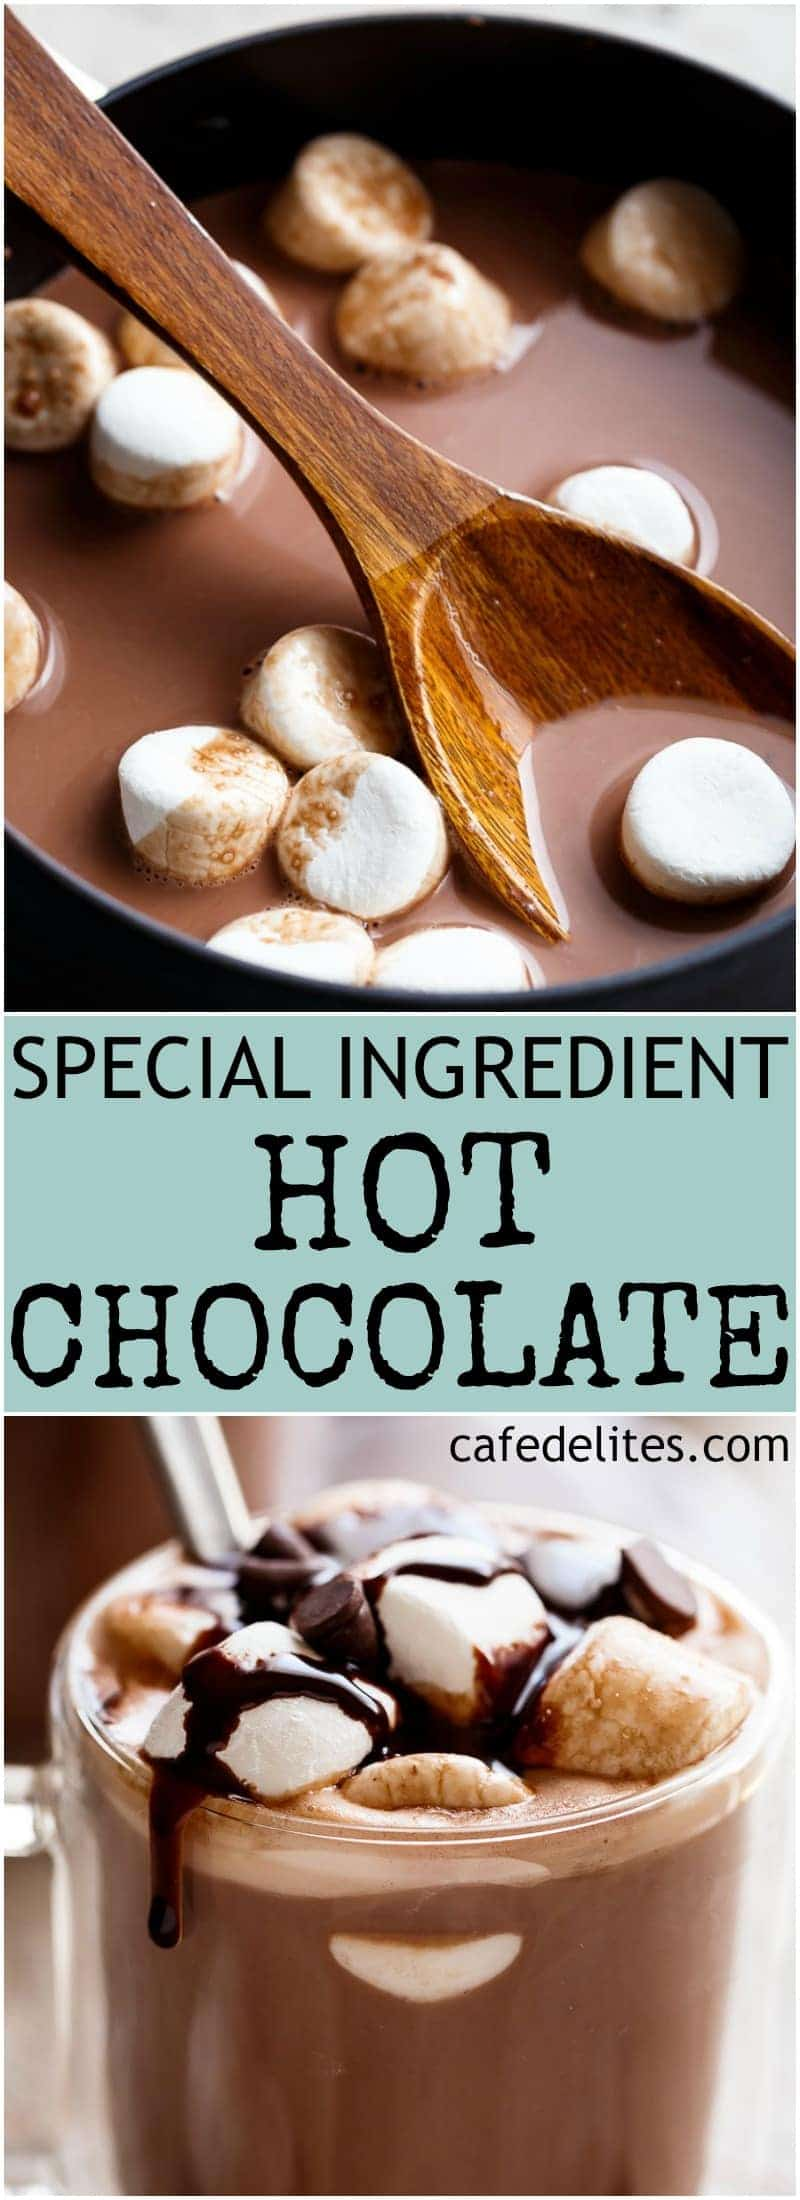 This Special Ingredient Hot Chocolate is so decadently rich and creamy, they'll be begging you for your secret! And half the calories! | http://cafedelites.com